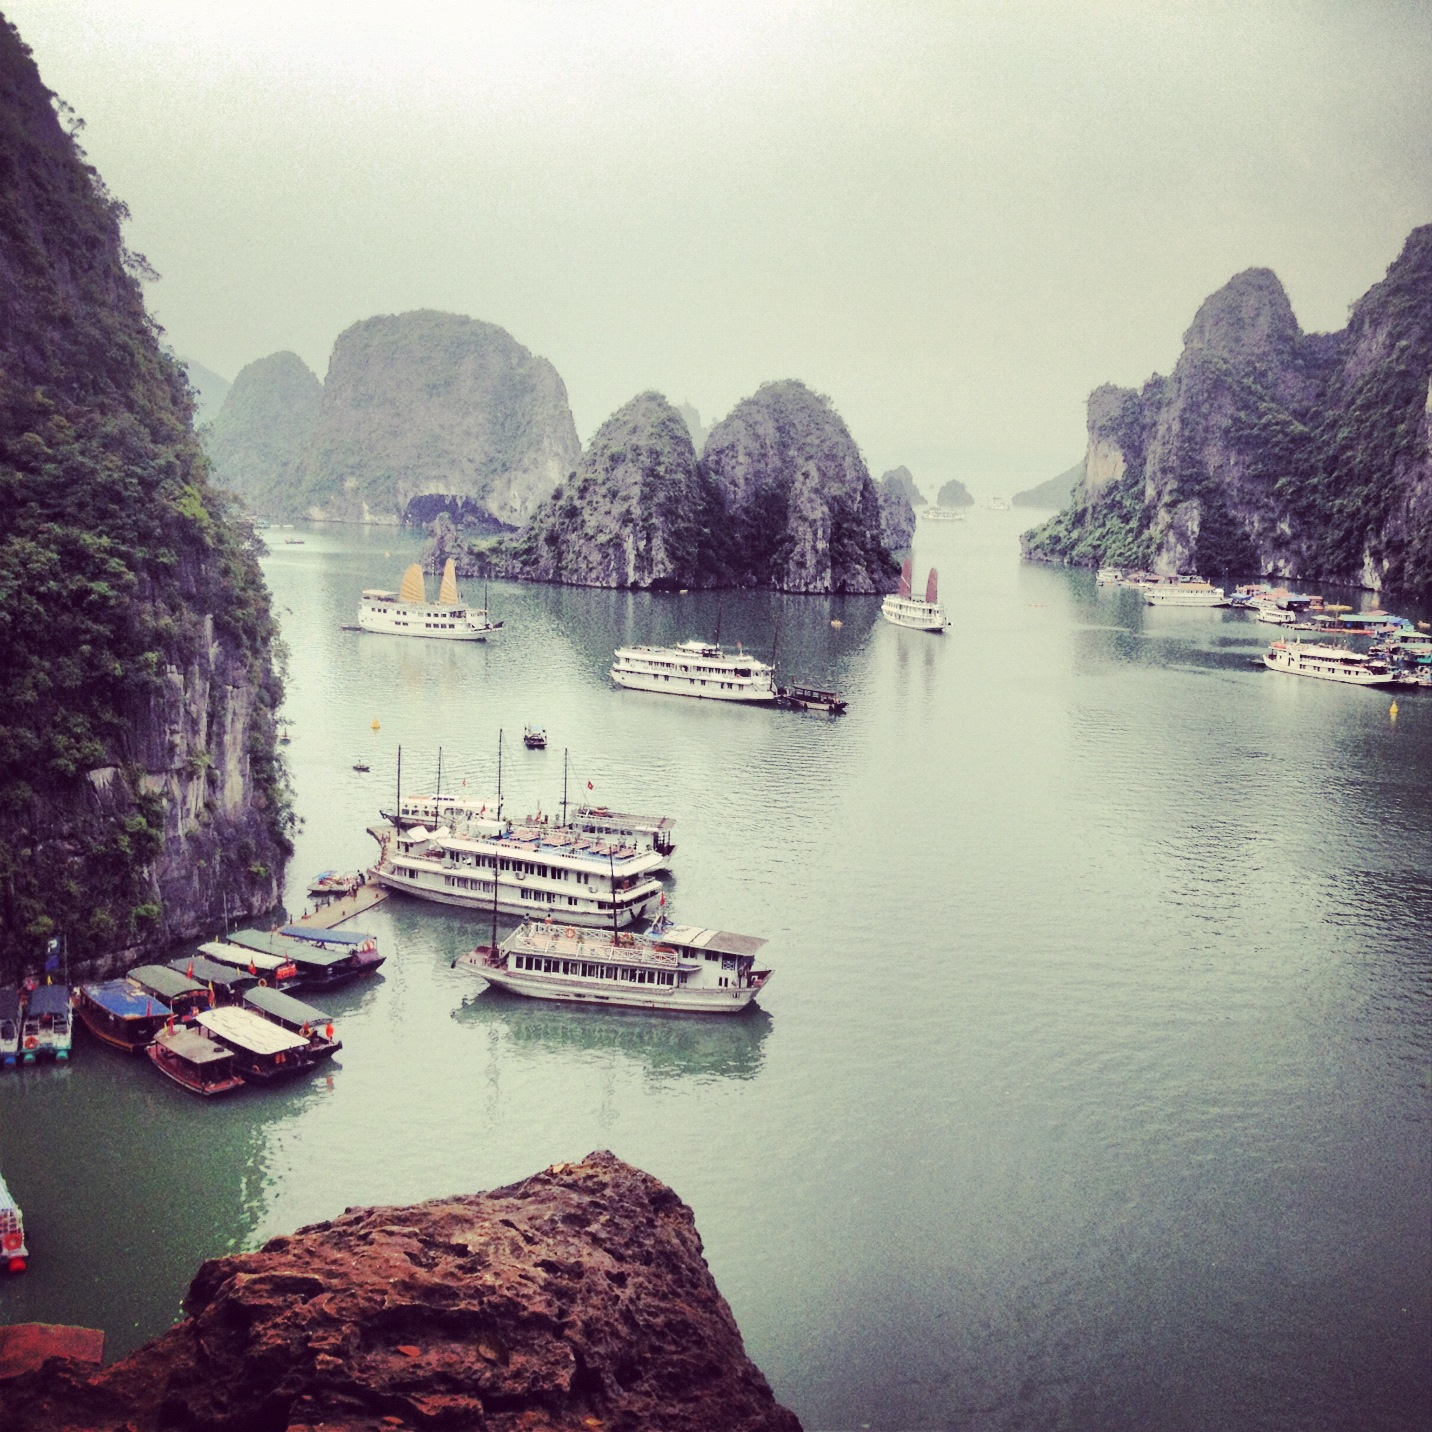 View from in the mountains, Halong Bay, Vietnam